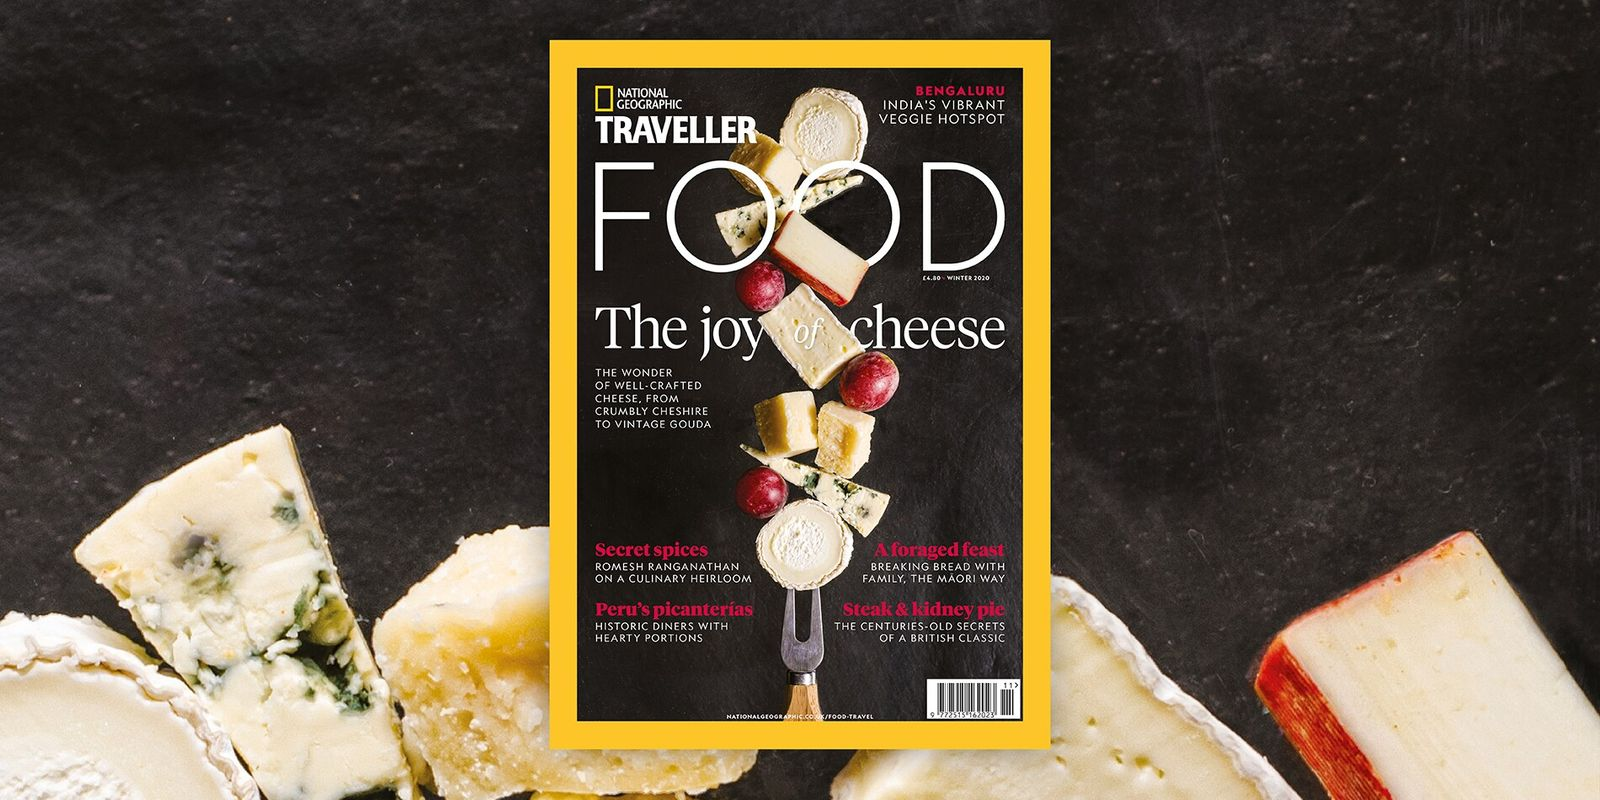 Inside the latest issue of National Geographic Traveller Food